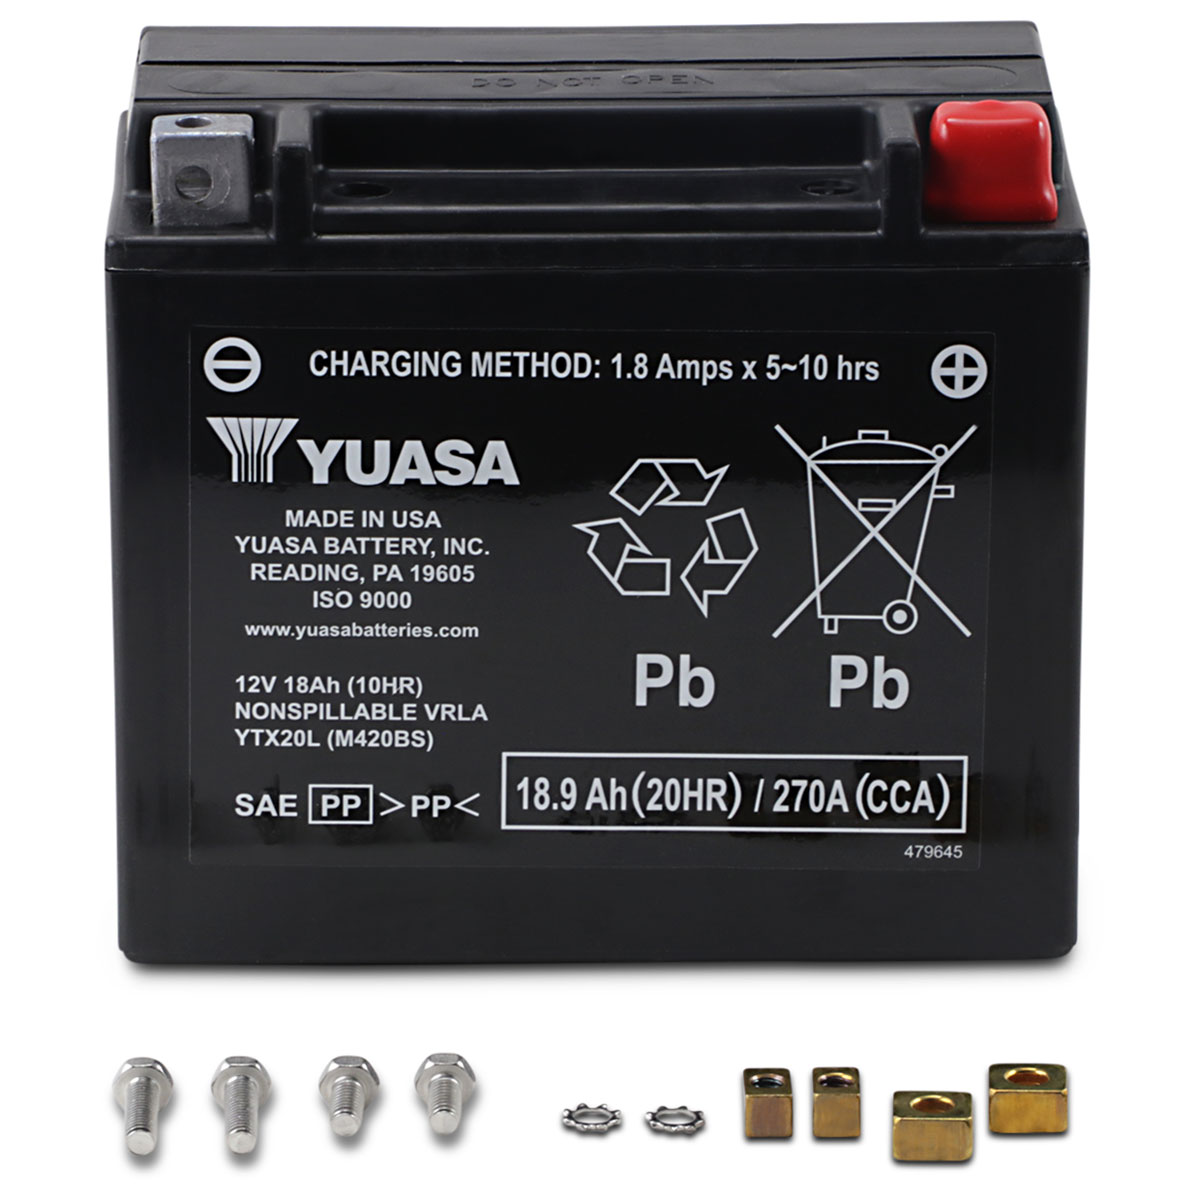 YUASA Factory Activated Battery